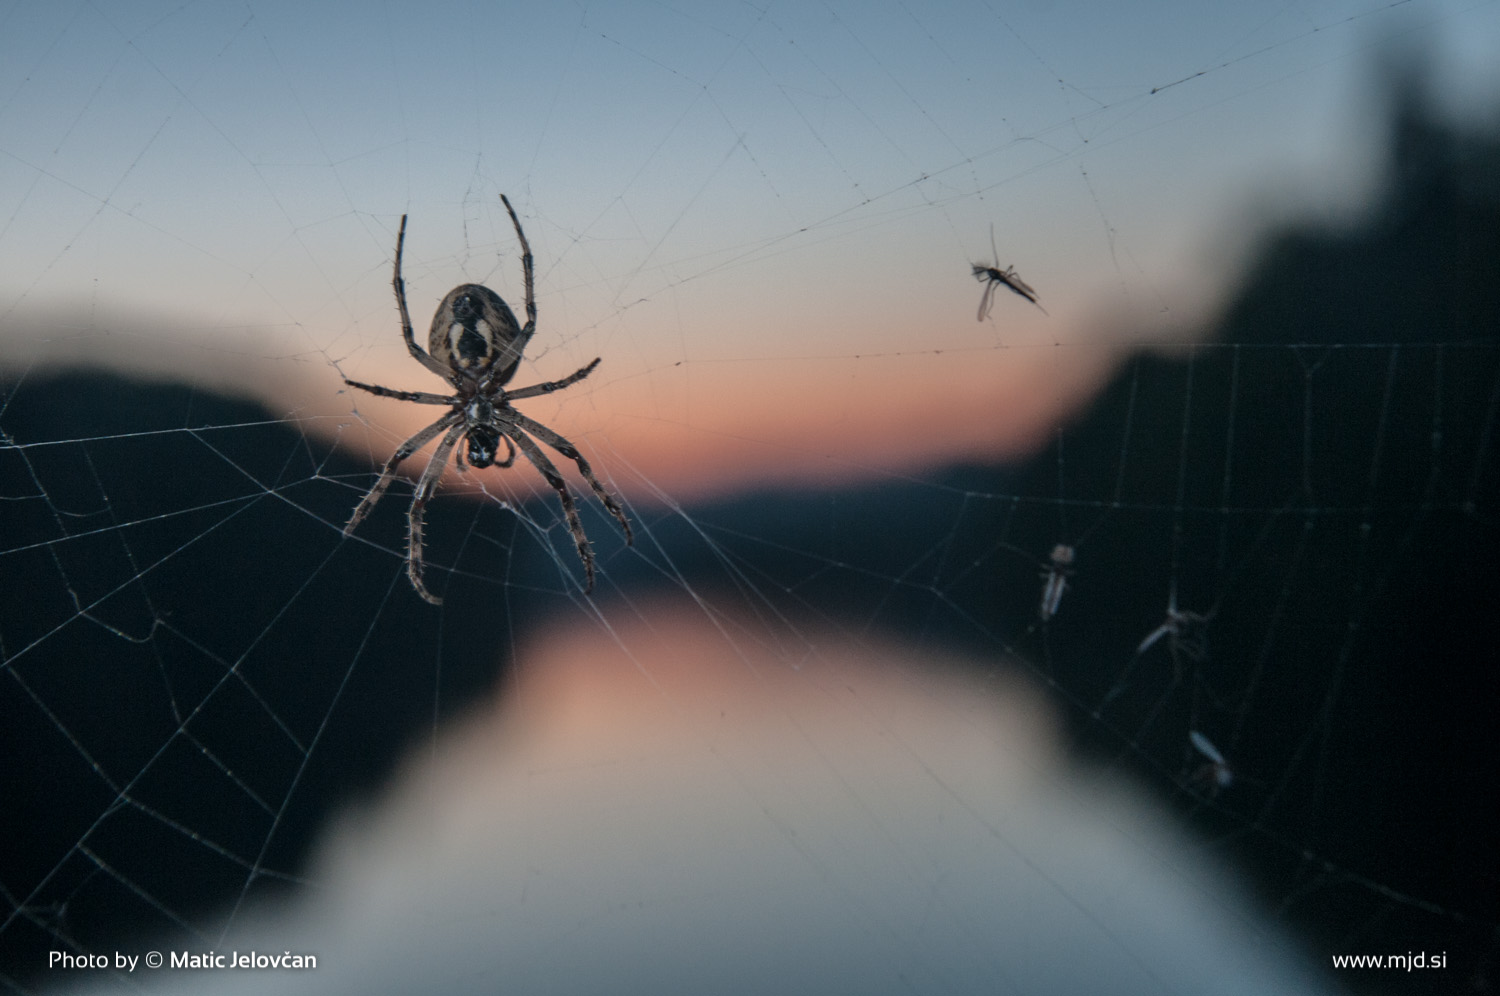 Zbilje and some spiders 15